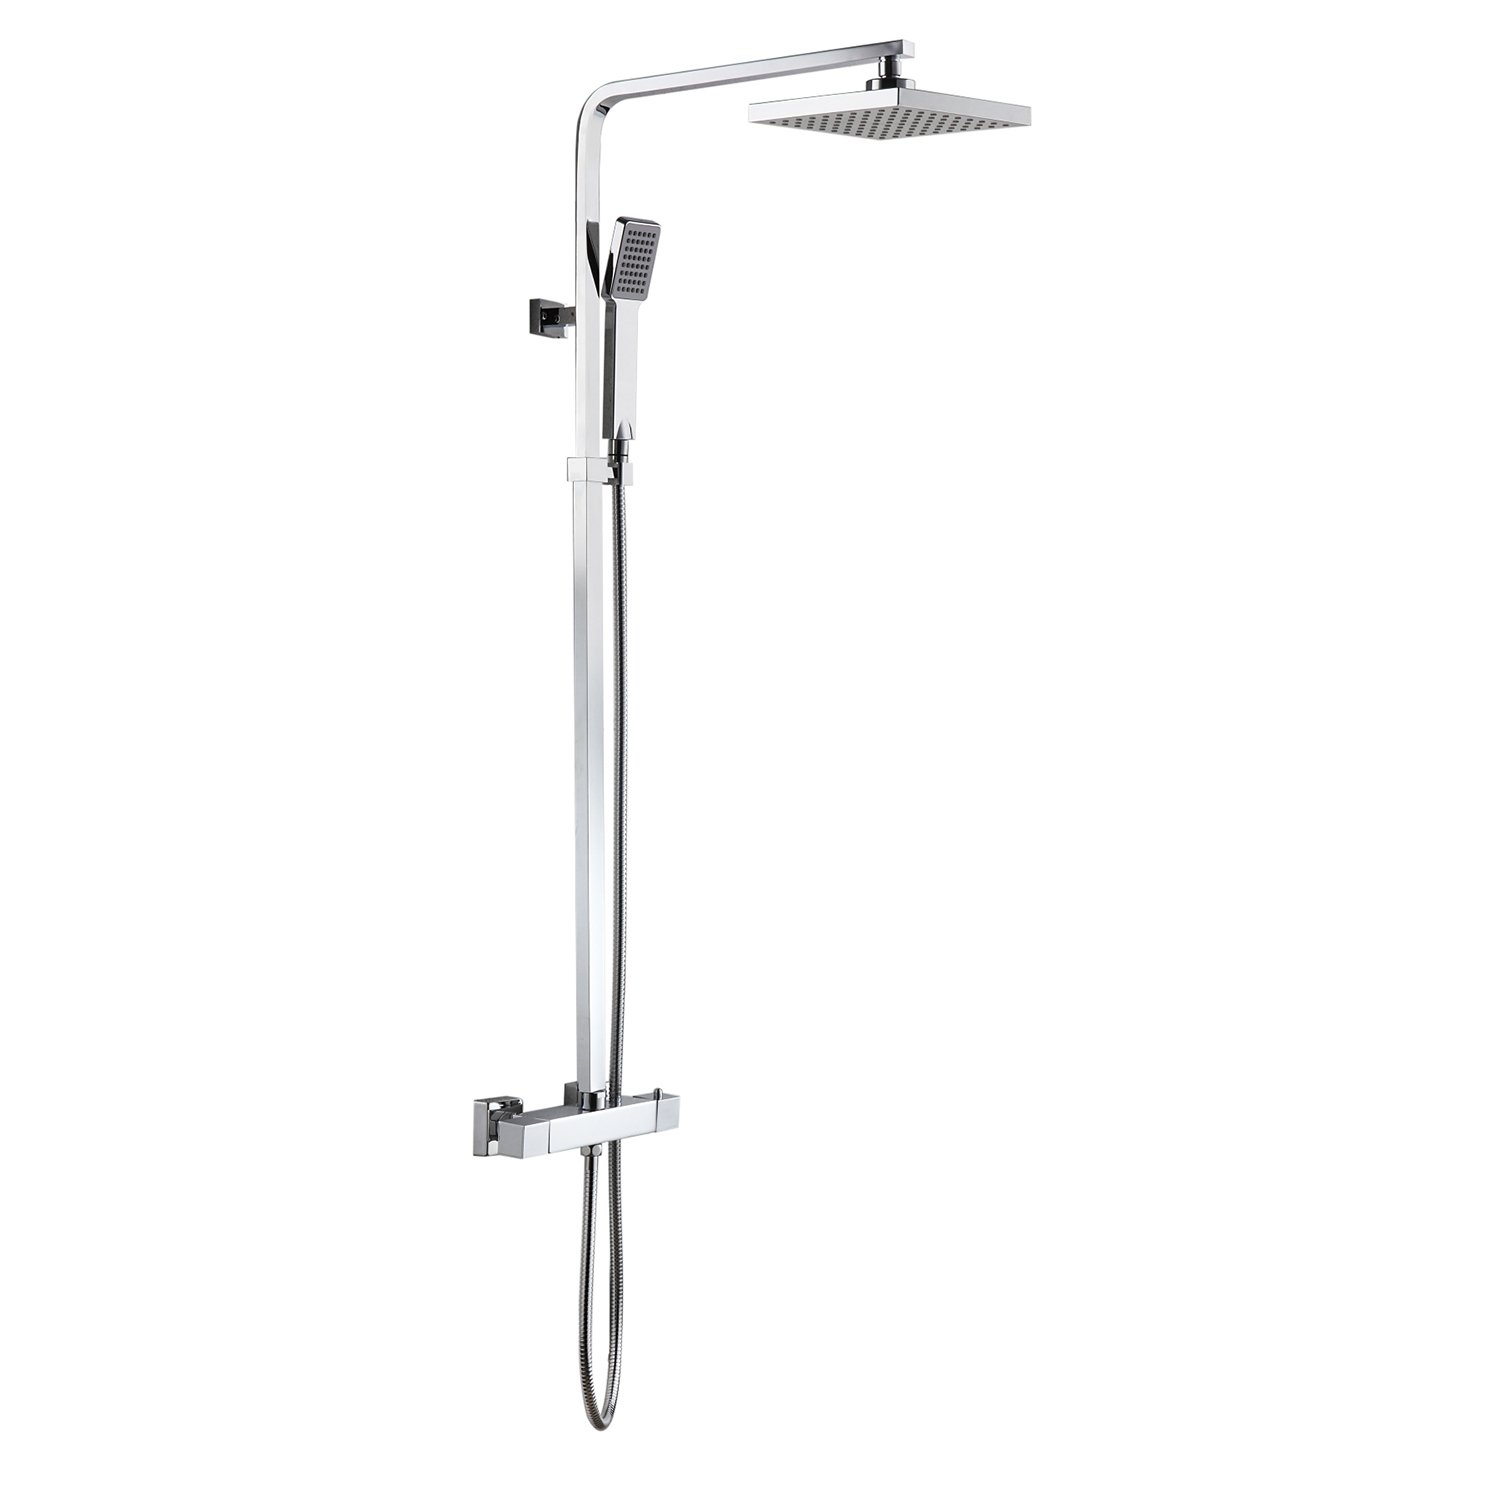 Square Thermostatic Bar Mixer Shower Set Head + Handset Hapilife